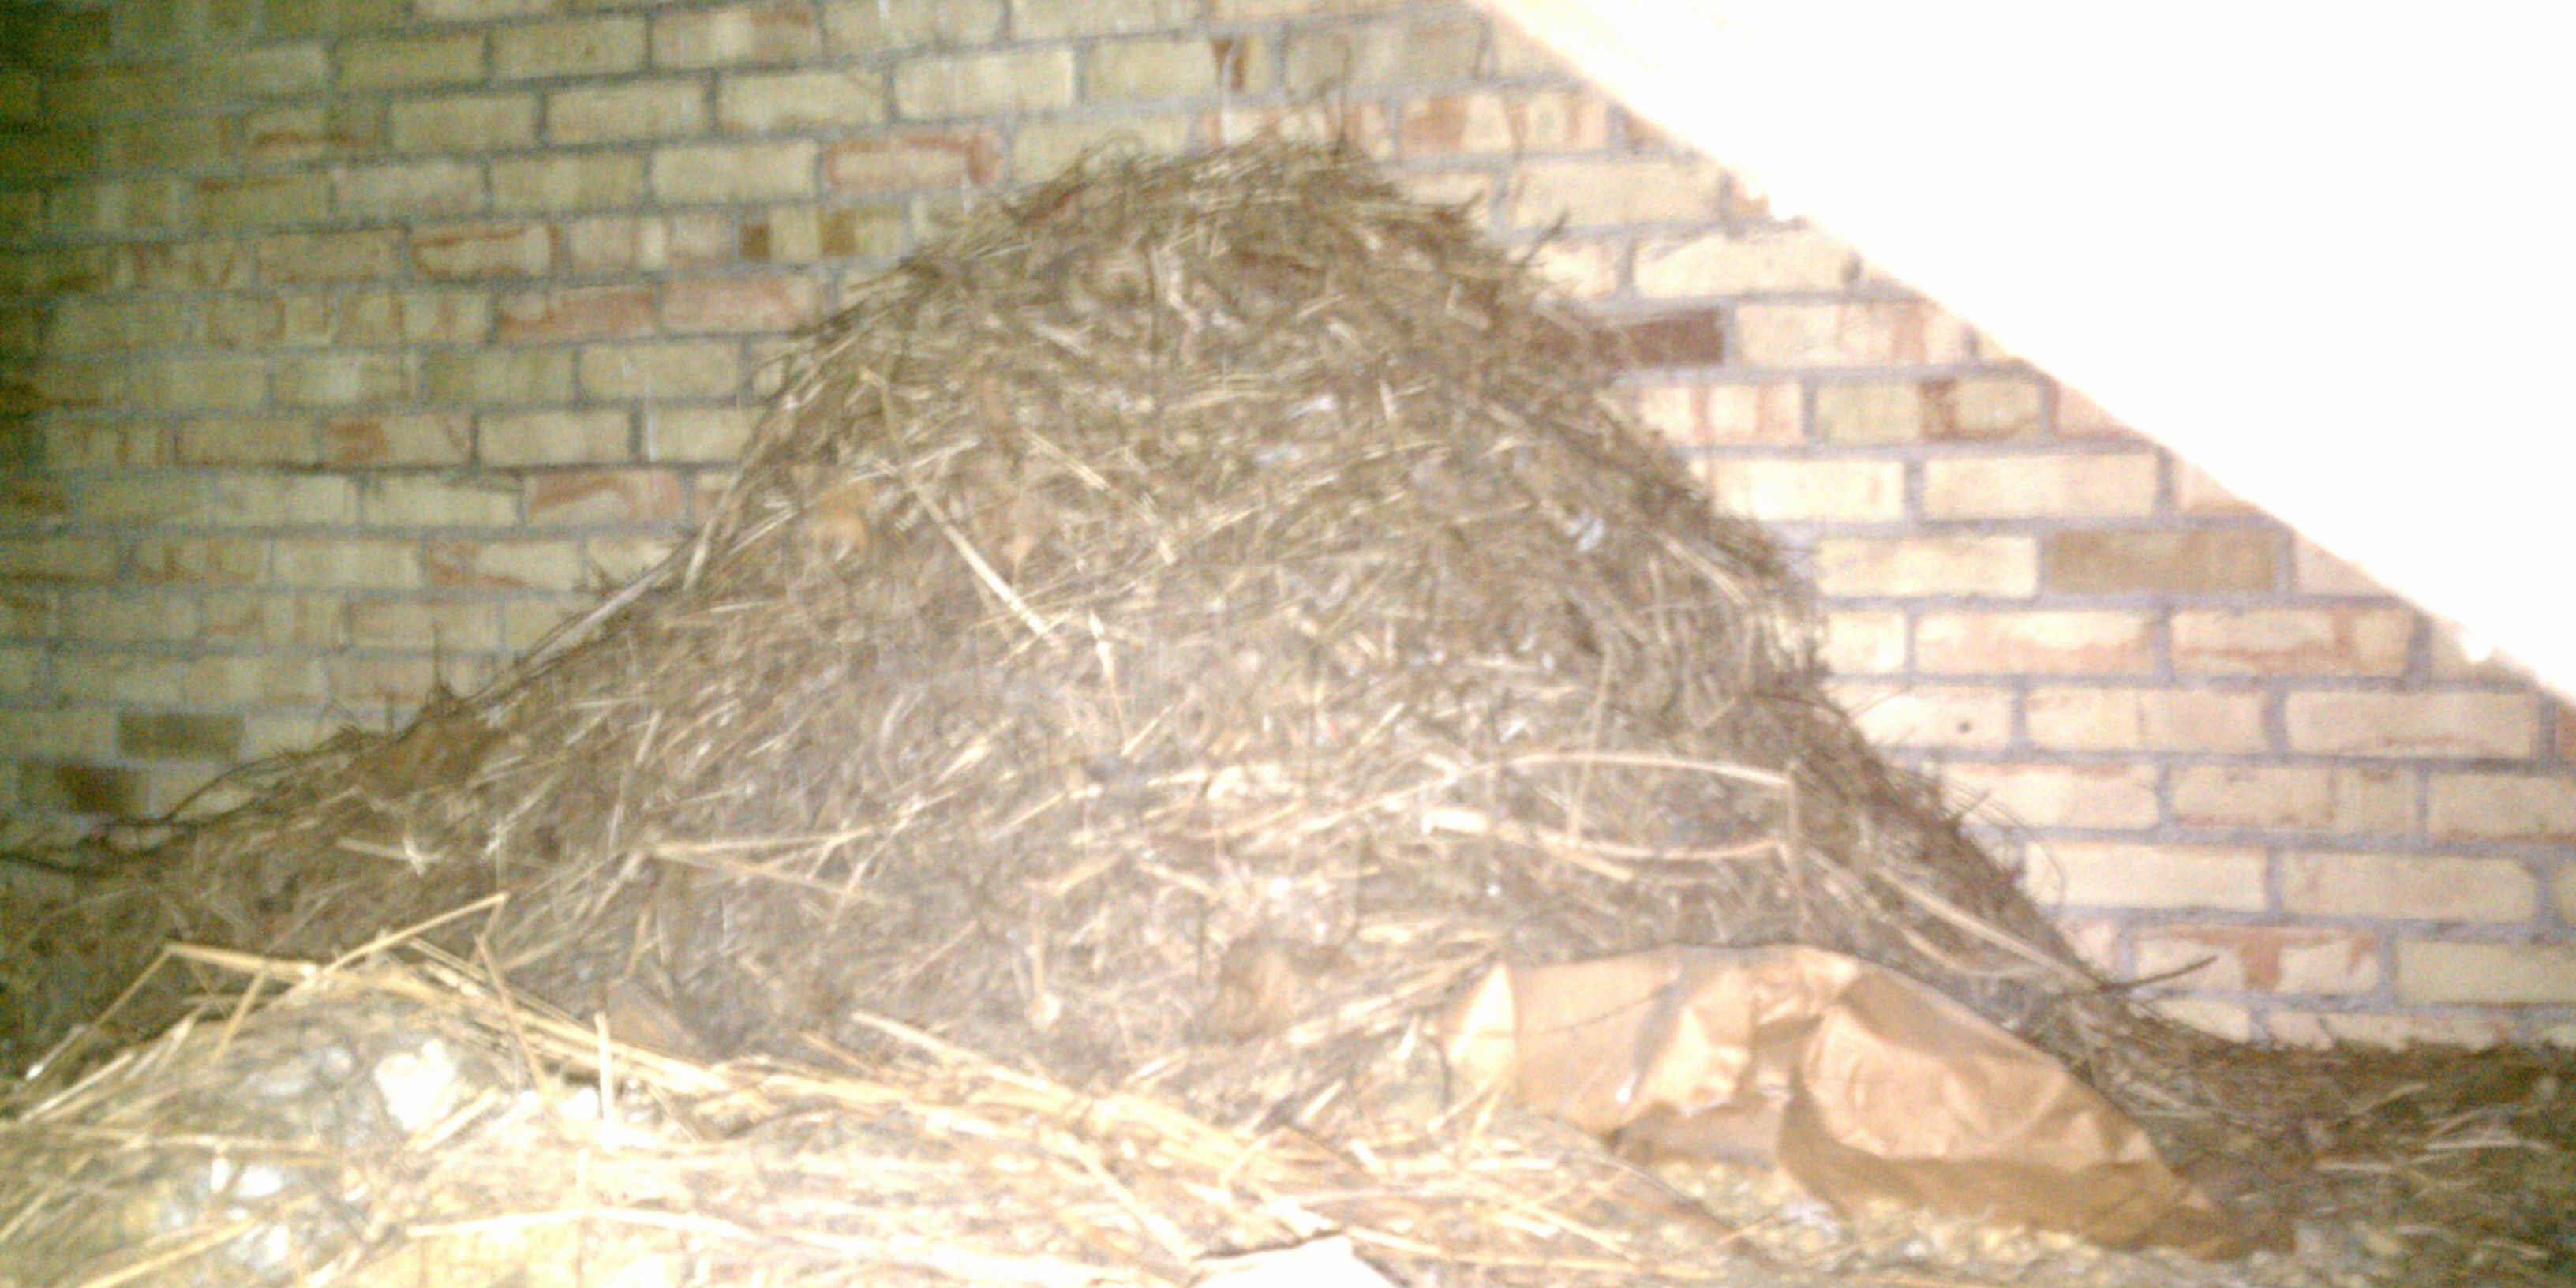 Michigan Bird Control Nest Clean up